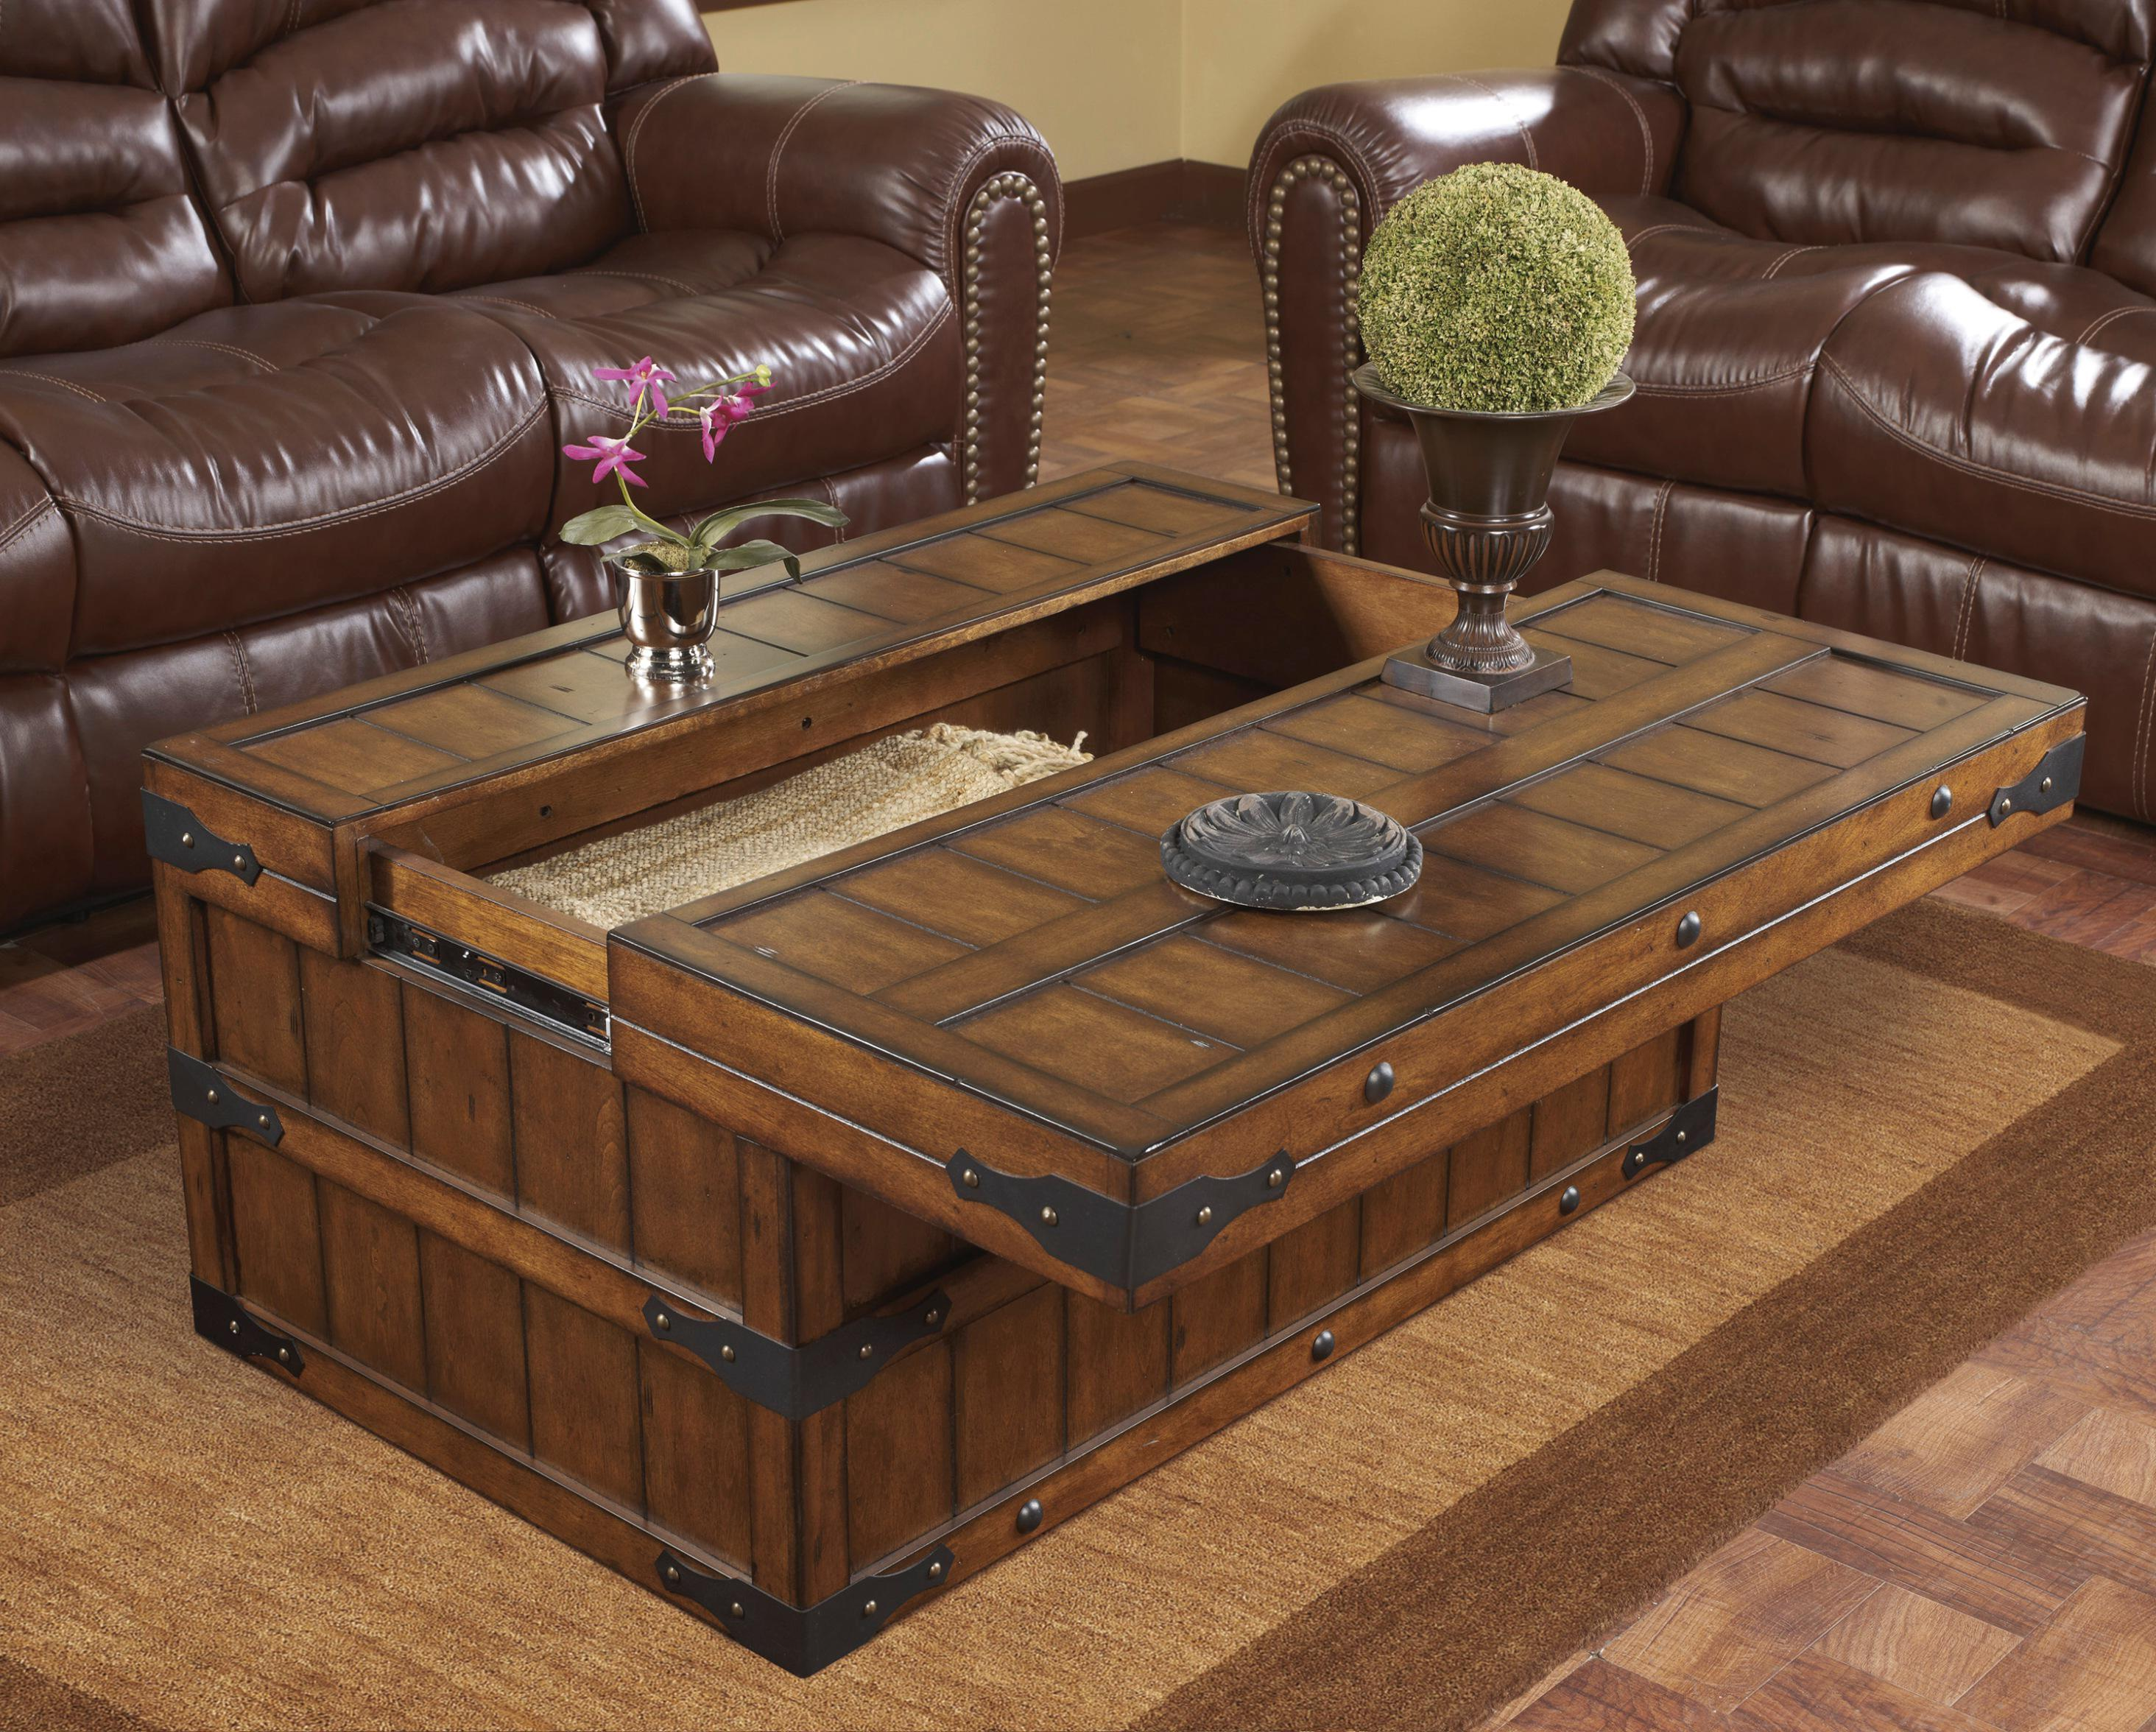 Wooden Chest Trunk Coffee Table Target Lift Top Dark Wicker